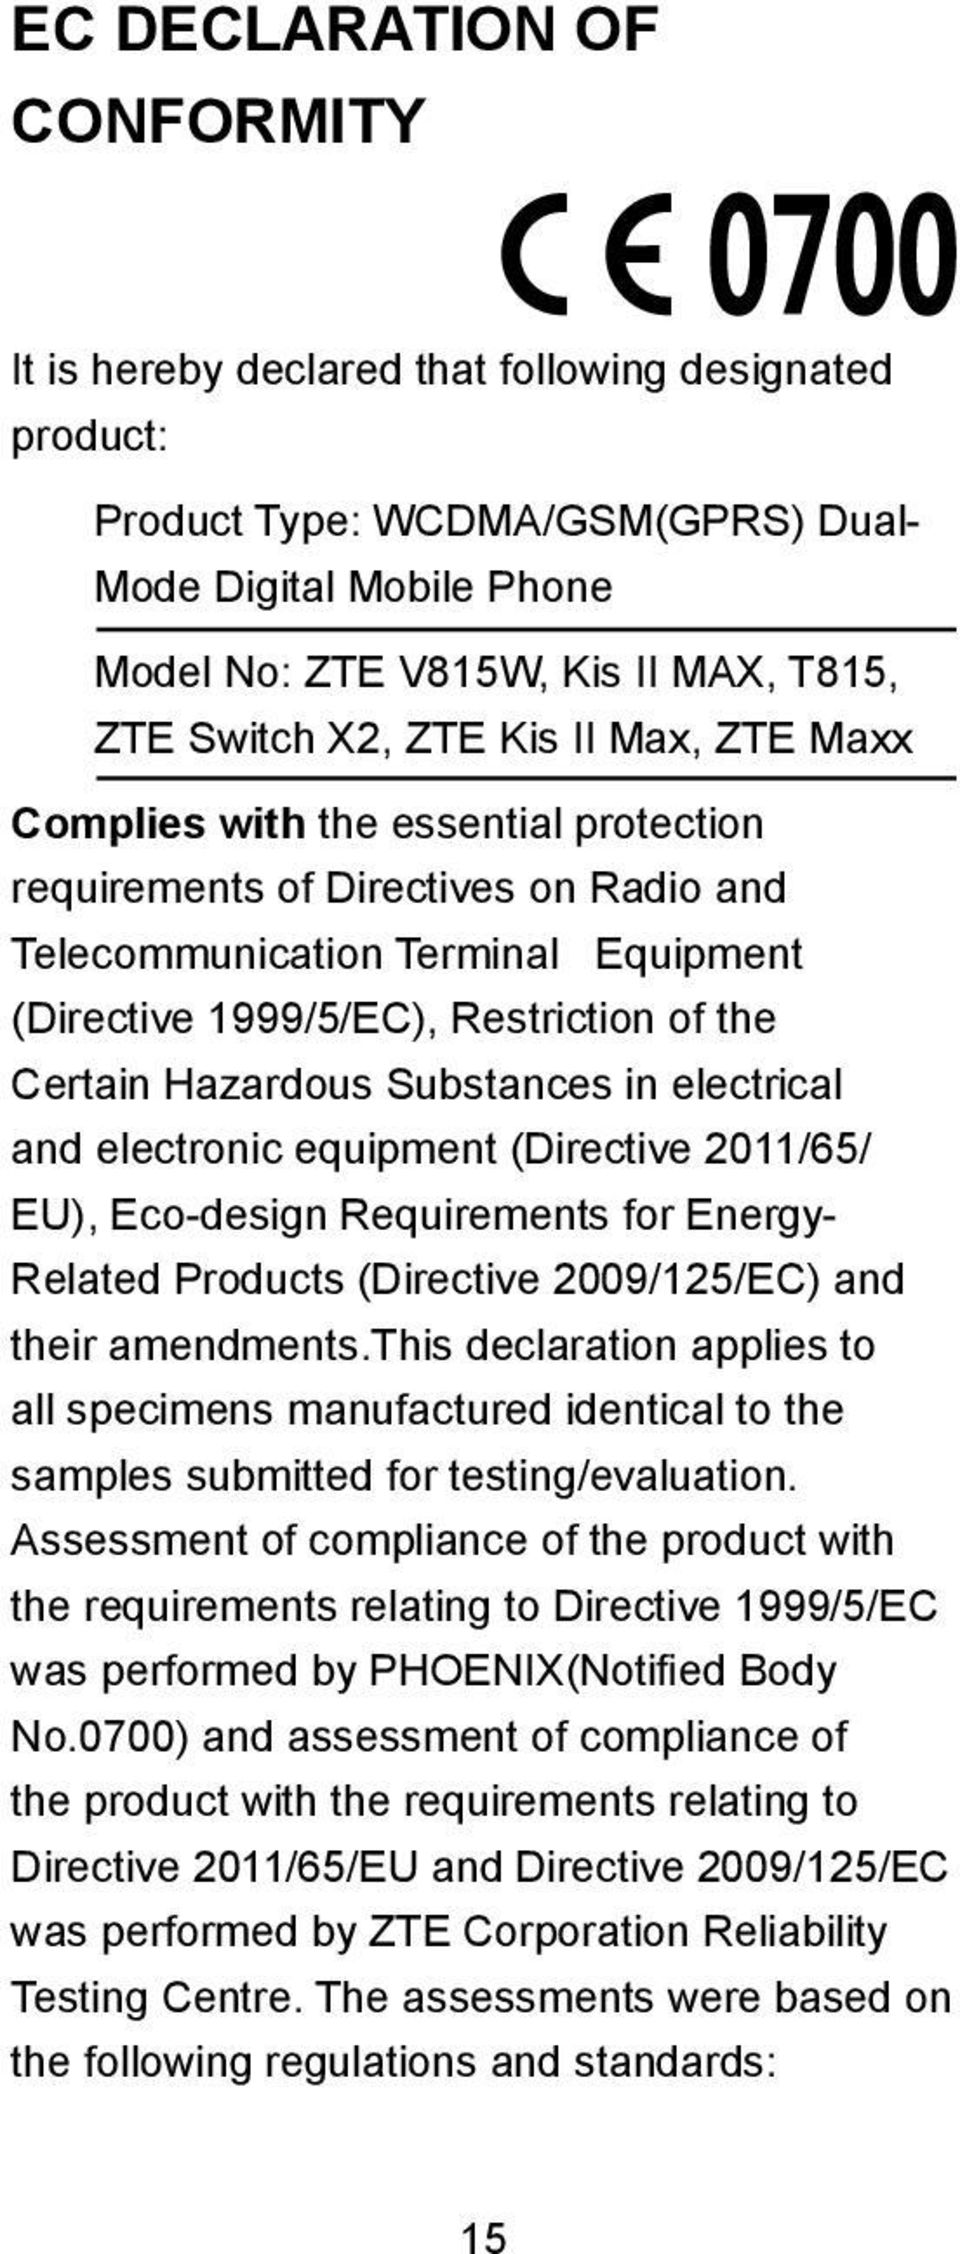 Hazardous Substances in electrical and electronic equipment (Directive 2011/65/ EU), Eco-design Requirements for Energy- Related Products (Directive 2009/125/EC) and their amendments.